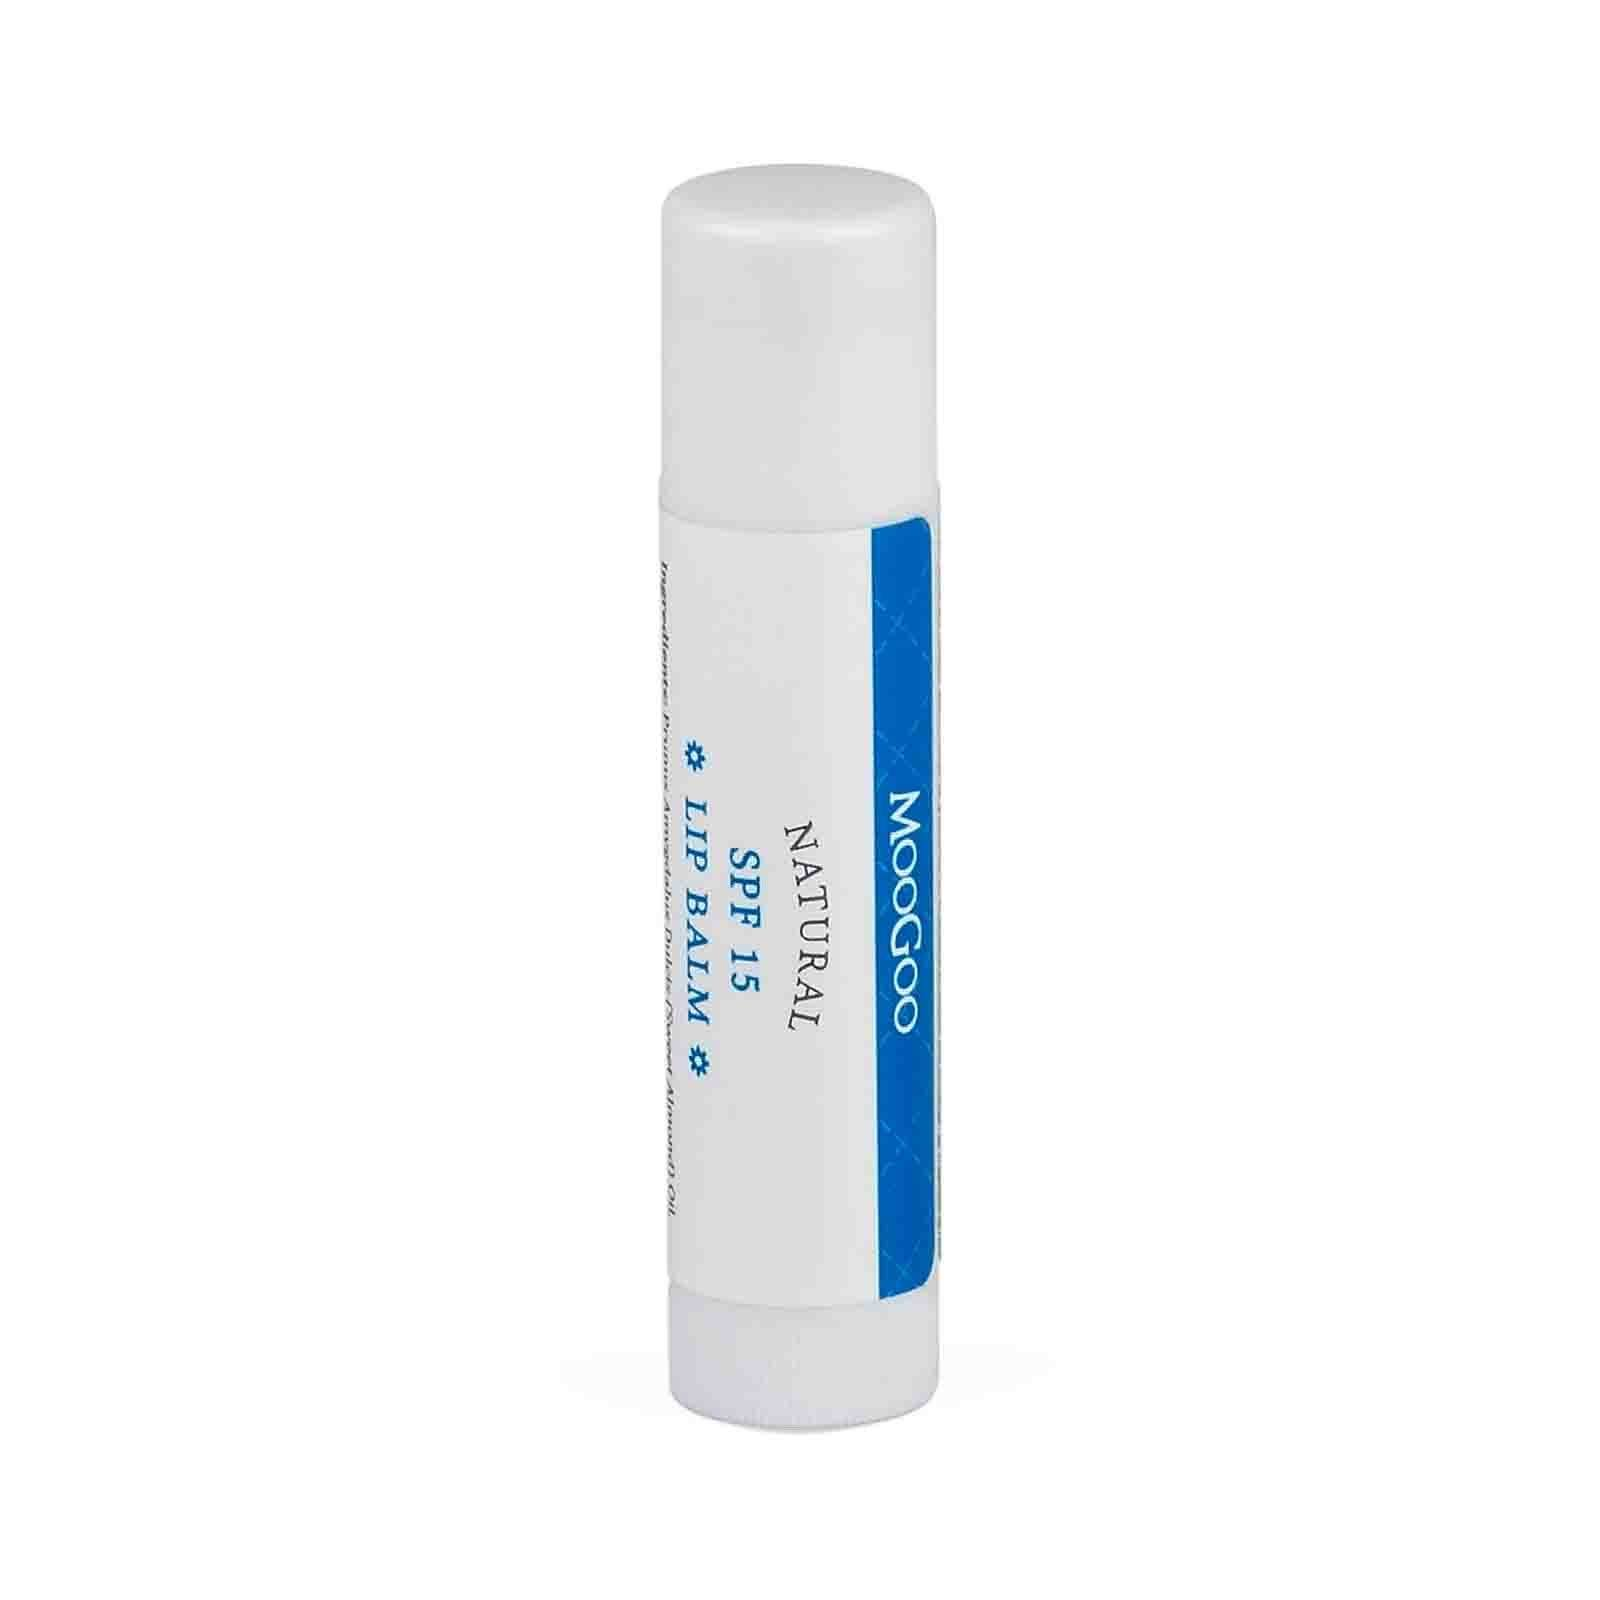 Moo-Goo Skincare SPF 15 Anti-Ageing Face Cream